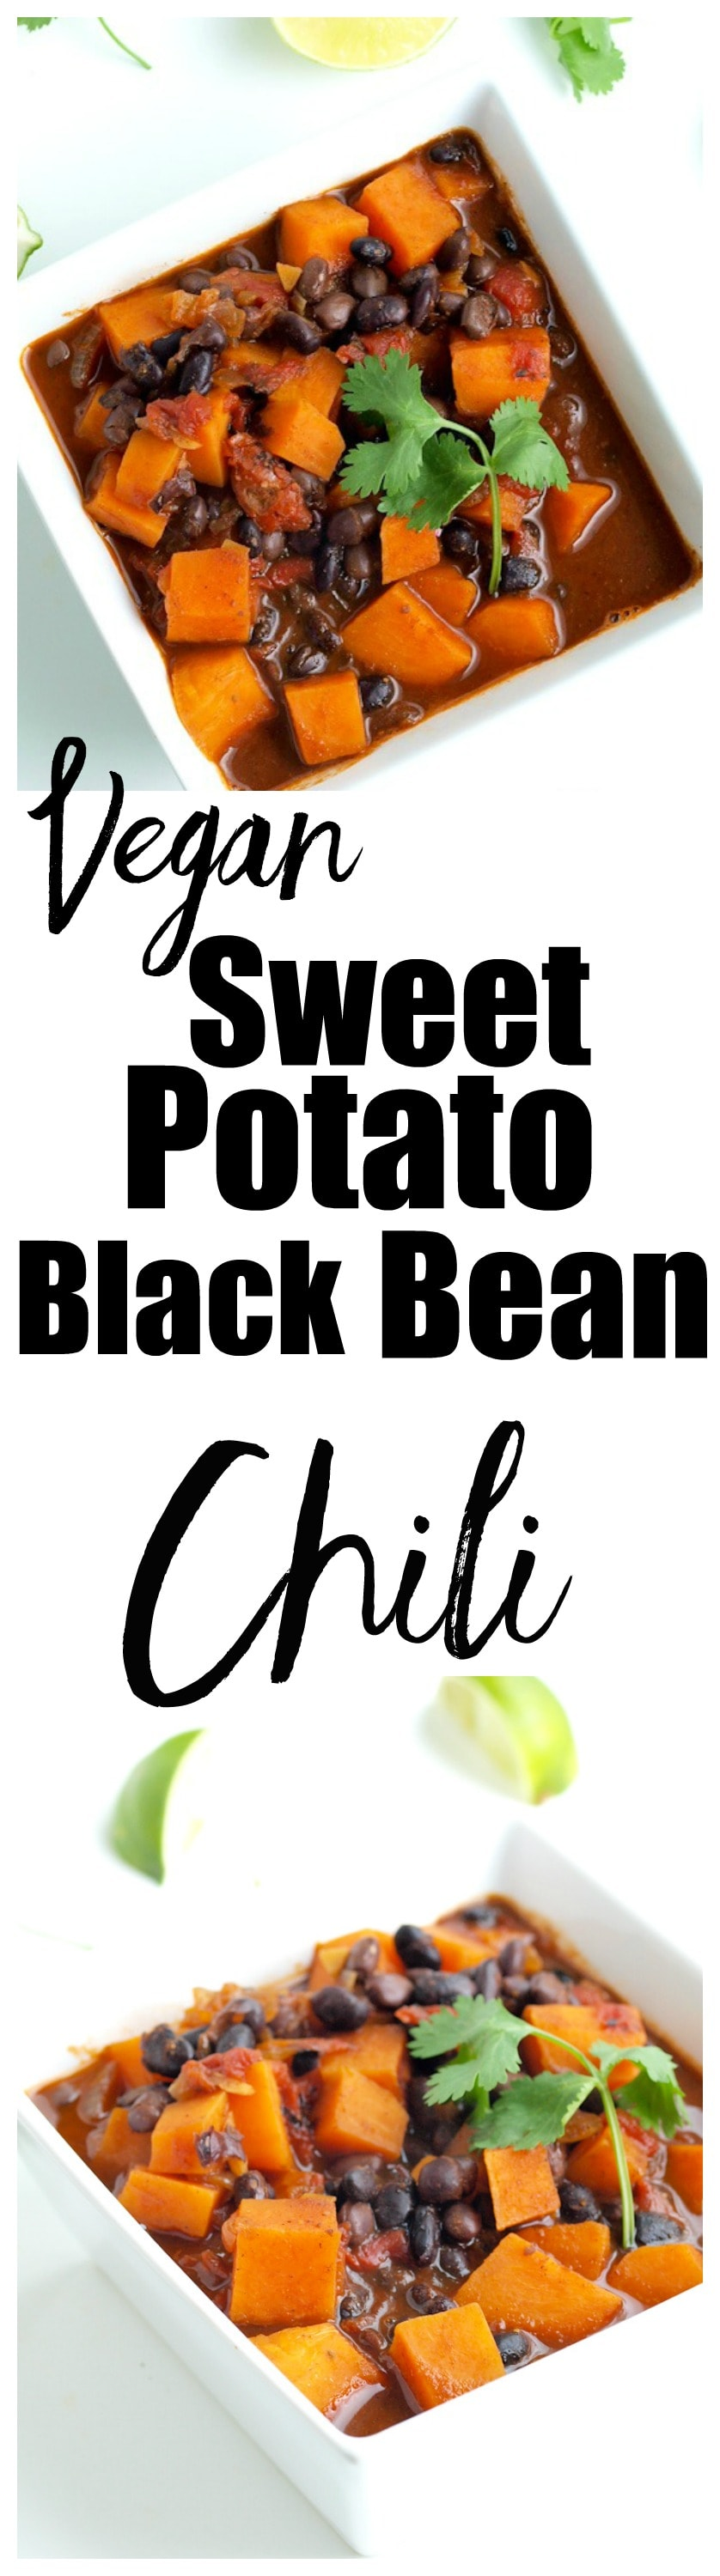 Sweet Potato and Black Bean Chili Recipe. This is a healthy fall recipe that is always a hit! Vegan and gluten-free chili that is an easy and healthy weeknight meal.